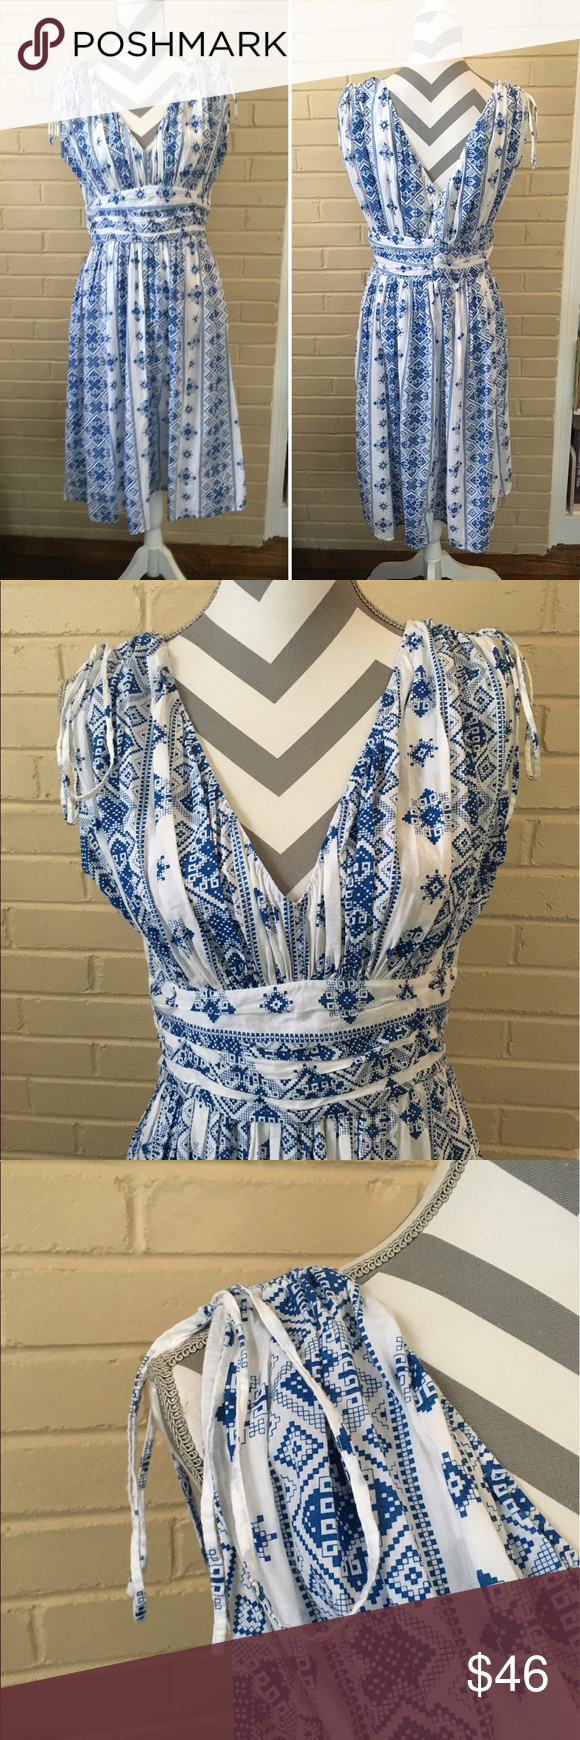 NWOT April May Blue White Cotton Floral Sundress L NWOT April, May for Anthropologie blue and white cotton sundress size ladies large. Sundress has ties at the shoulders and zips in the back with no lining. It is THE classic sundress ~ stunning and new without tags. Smoke free. MEASUREMENTS: underarm to underarm lying flat - 18 inches FLAT, waist lying flat is 16 inches and the length from top strap to bottom hem is 40 inches. Anthropologie Dresses Midi